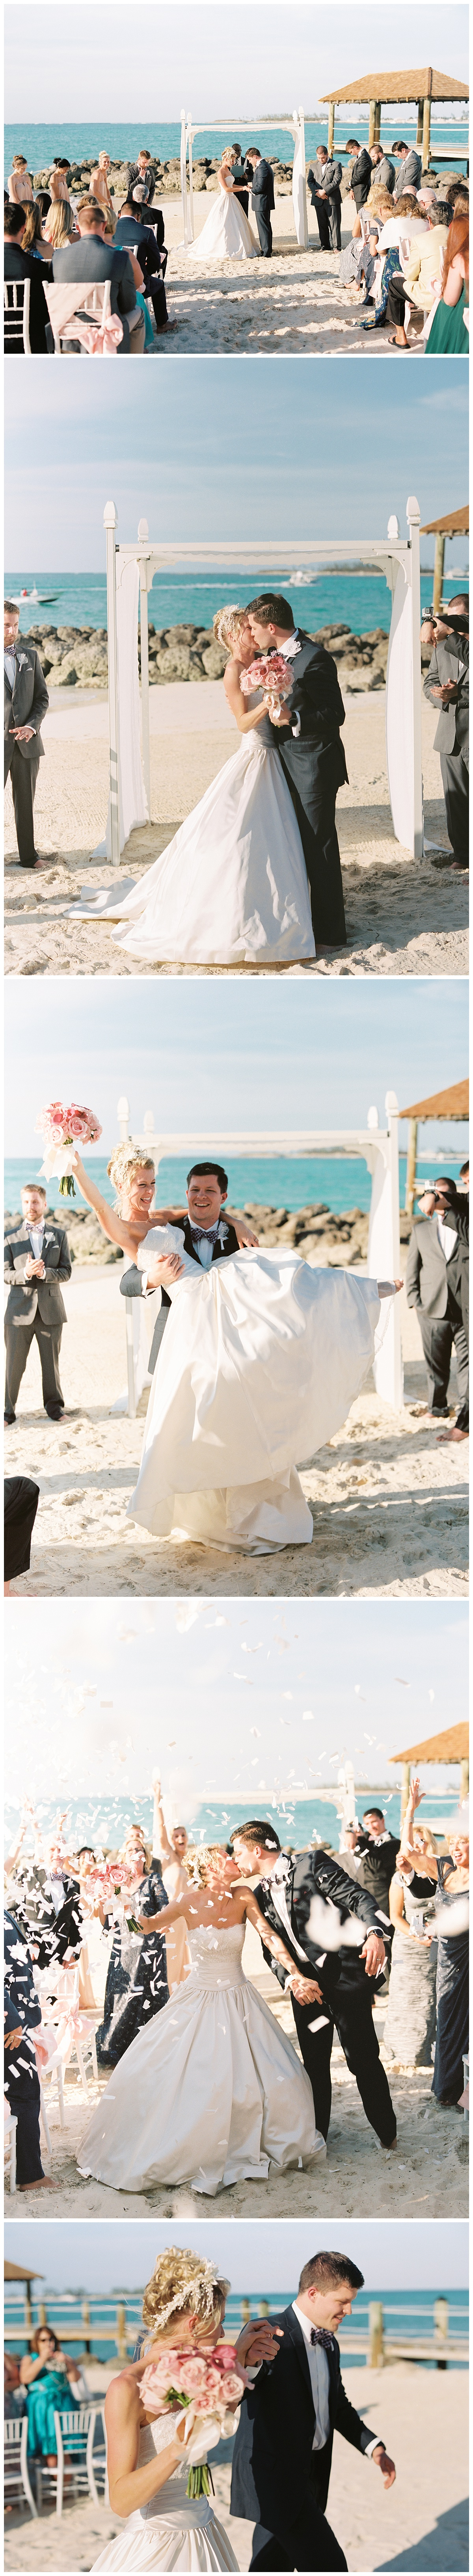 sandals-bahamas-wedding-ar-photography-7.jpg